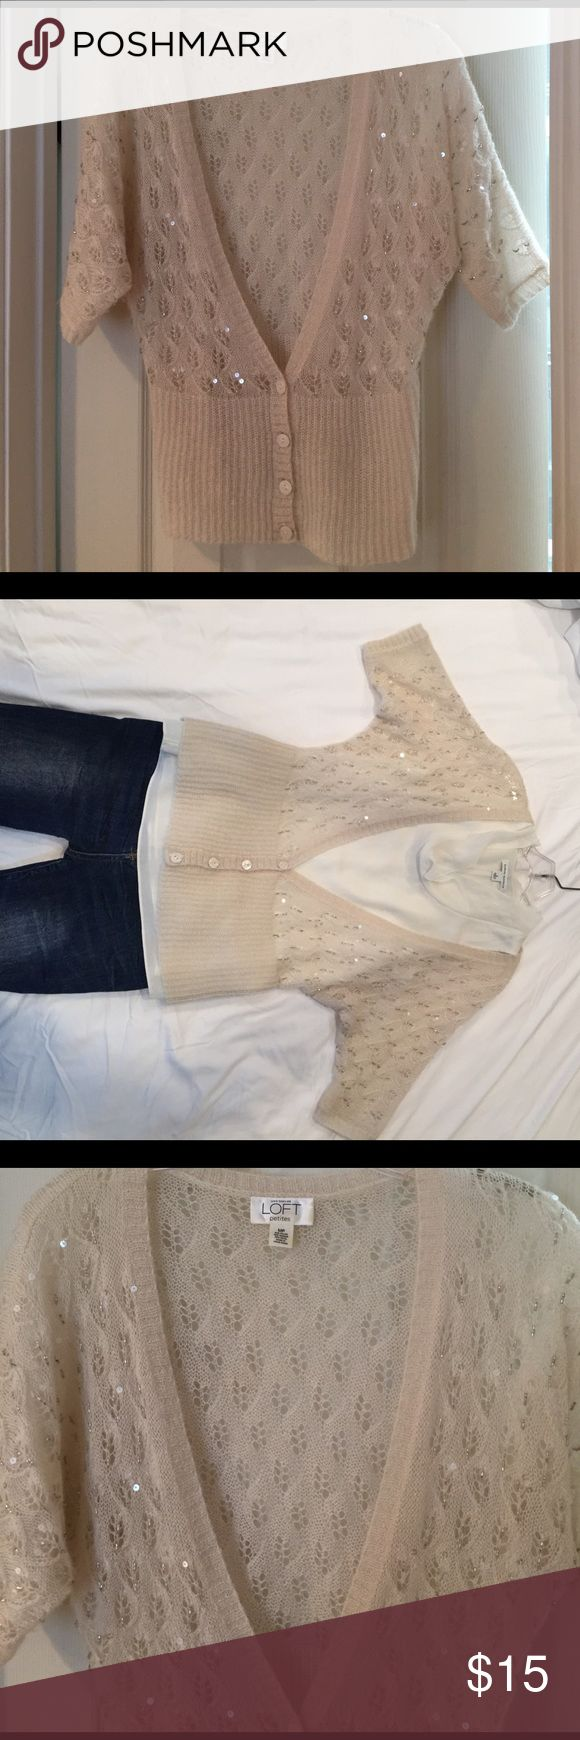 ANNE TAYLOR LOFT Cream Sequin Cardigan Airy and light cream cardigan beaded and sequined with just enough sparkle. Beautiful detail. EUC. Medium Petite but fits a small size perfectly as well. Dress up or down with jeans or skirt. LOFT Sweaters Cardigans